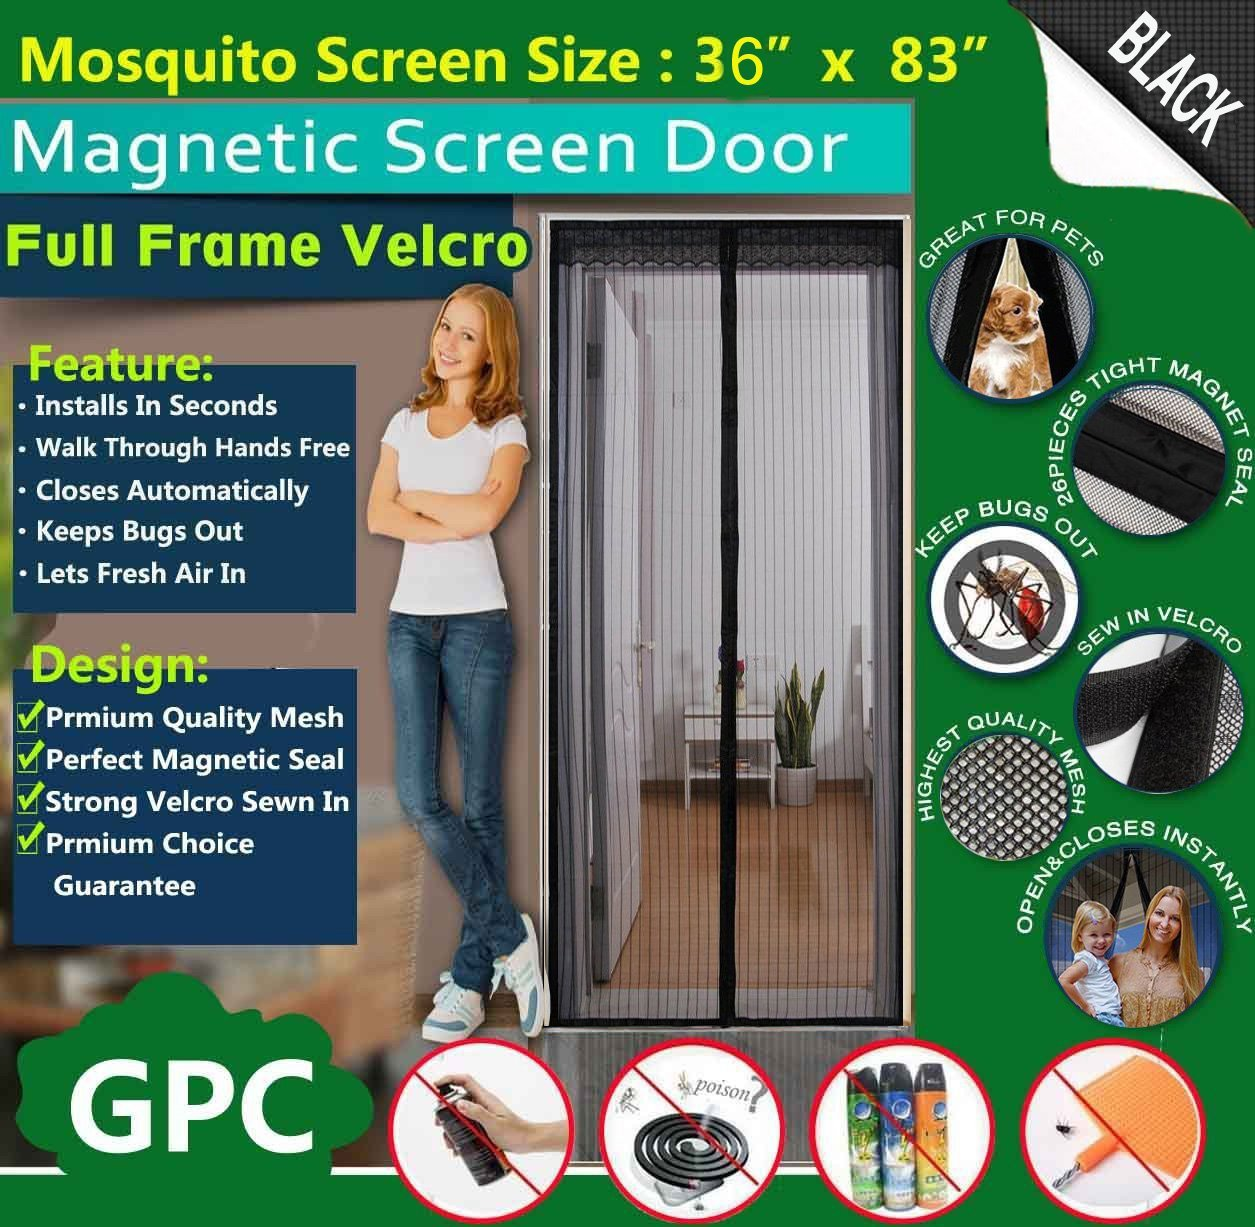 Queen rose magnetic fly screen door netautomatically shut mesh queen rose magnetic fly screen door netautomatically shut mesh curtain top to bottom with strong full frame velcrokeeps bugsmosquitoes outlets fresh air vtopaller Image collections